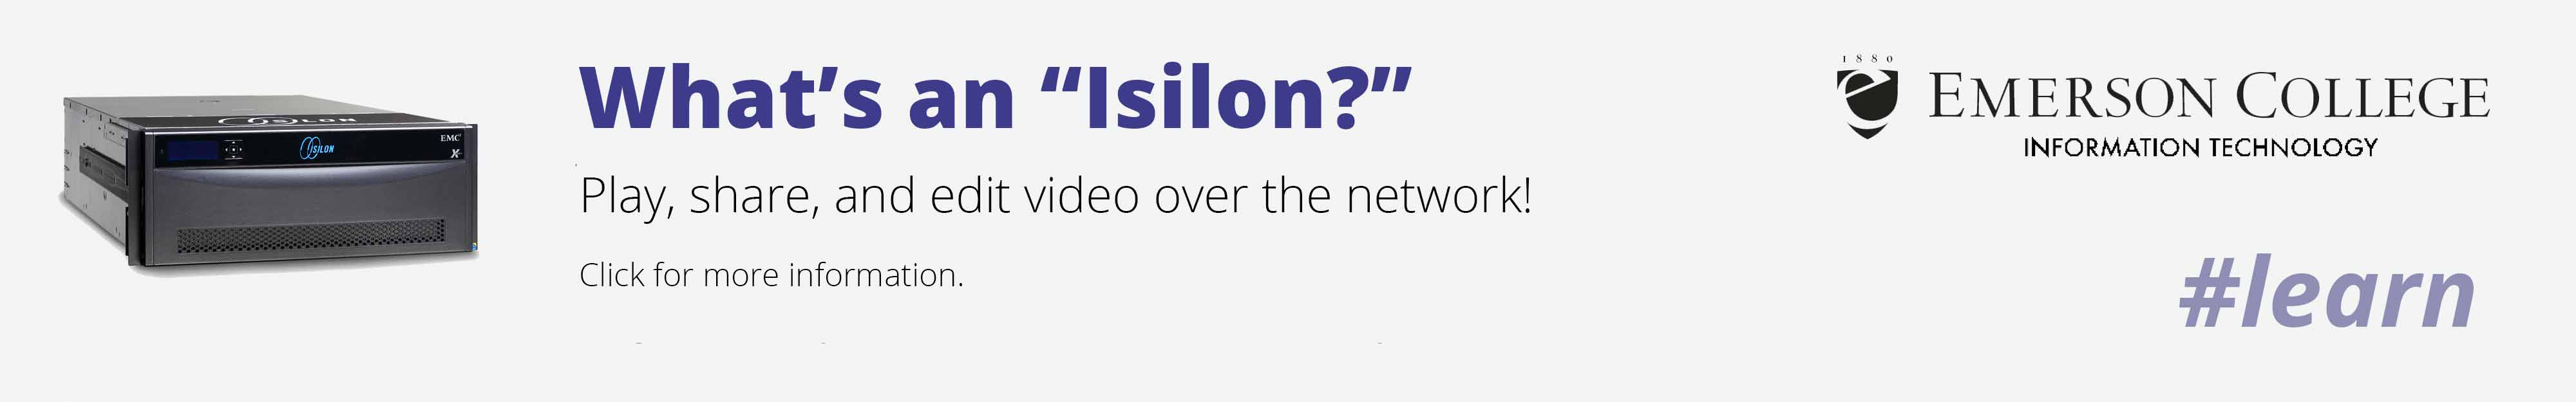 With Isilon, you can play, share, and edit video on free network storage!